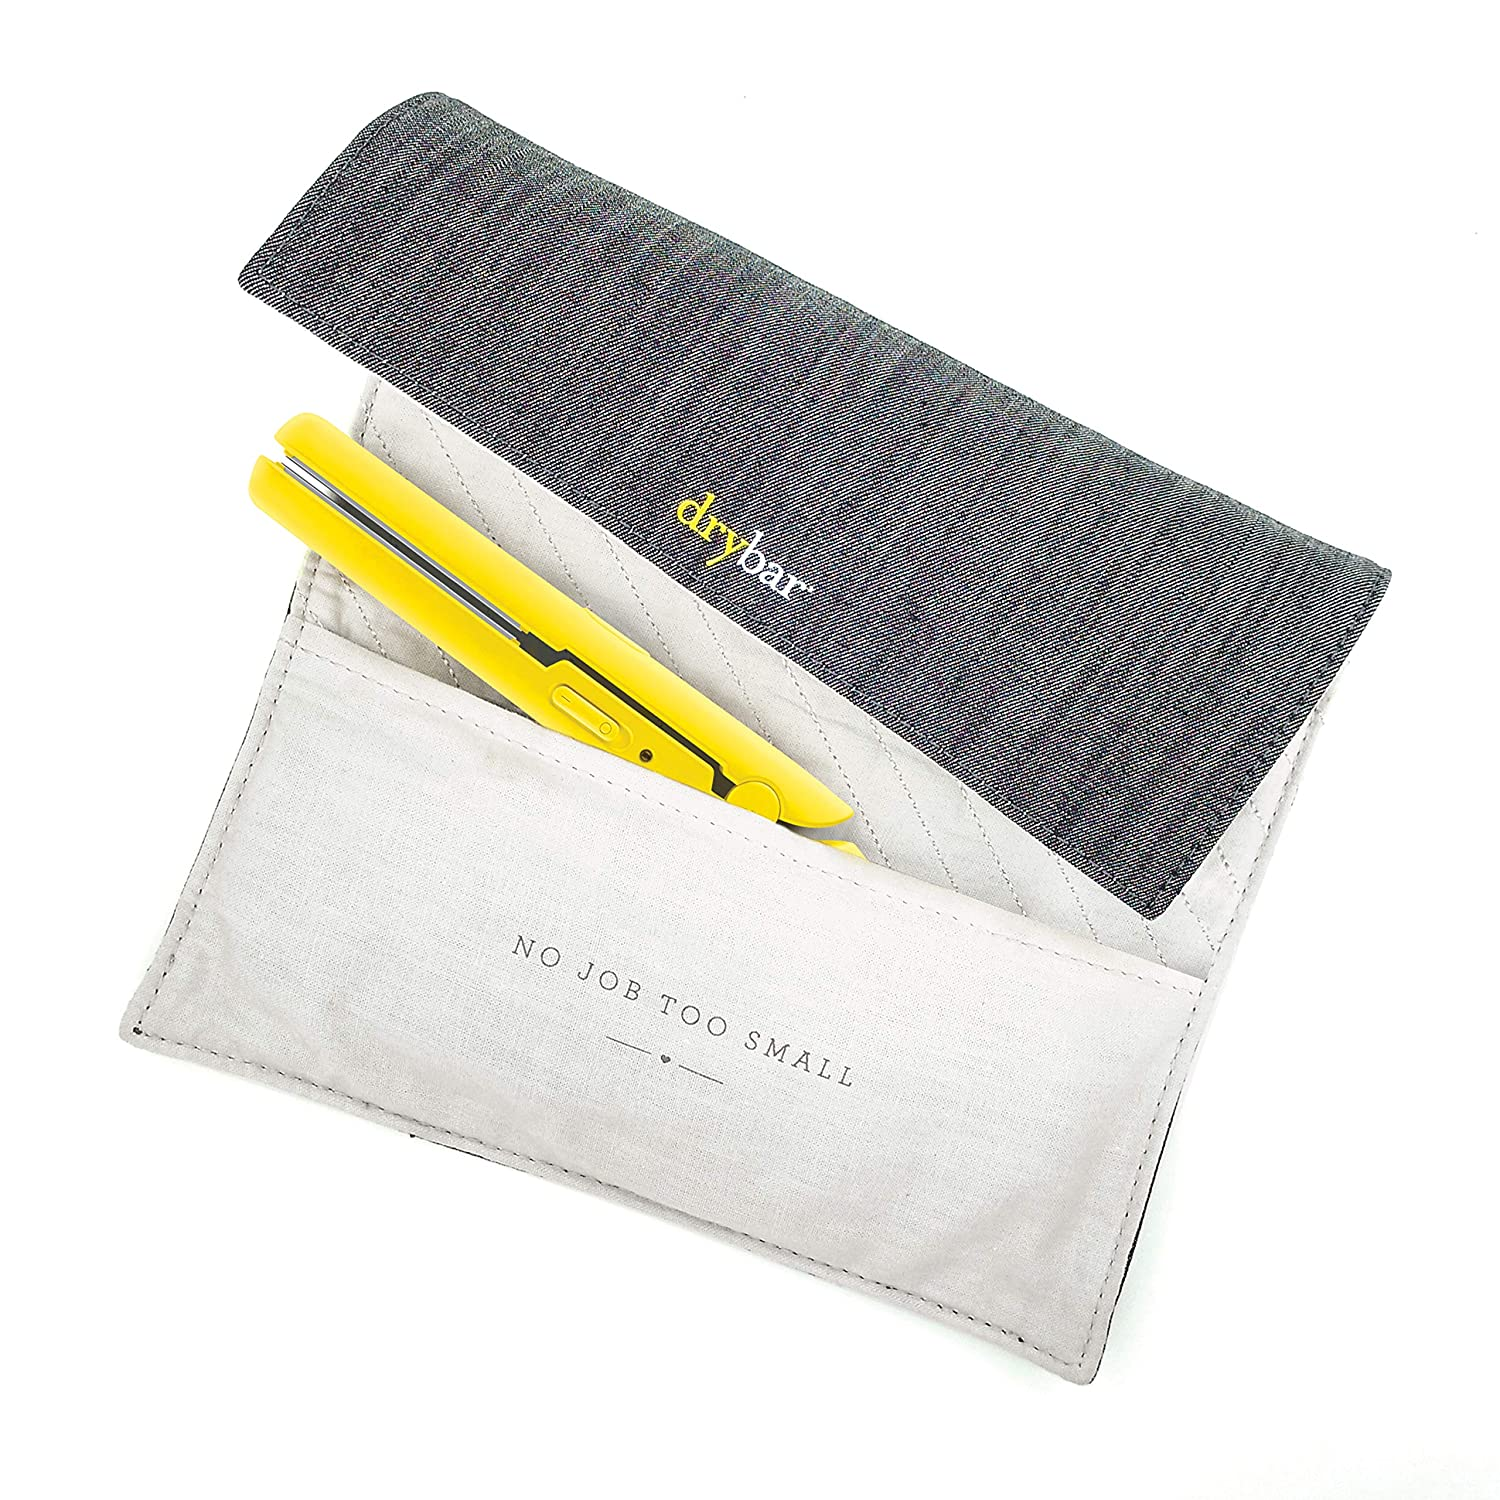 Drybar Tiny Tress Press Detailing Iron